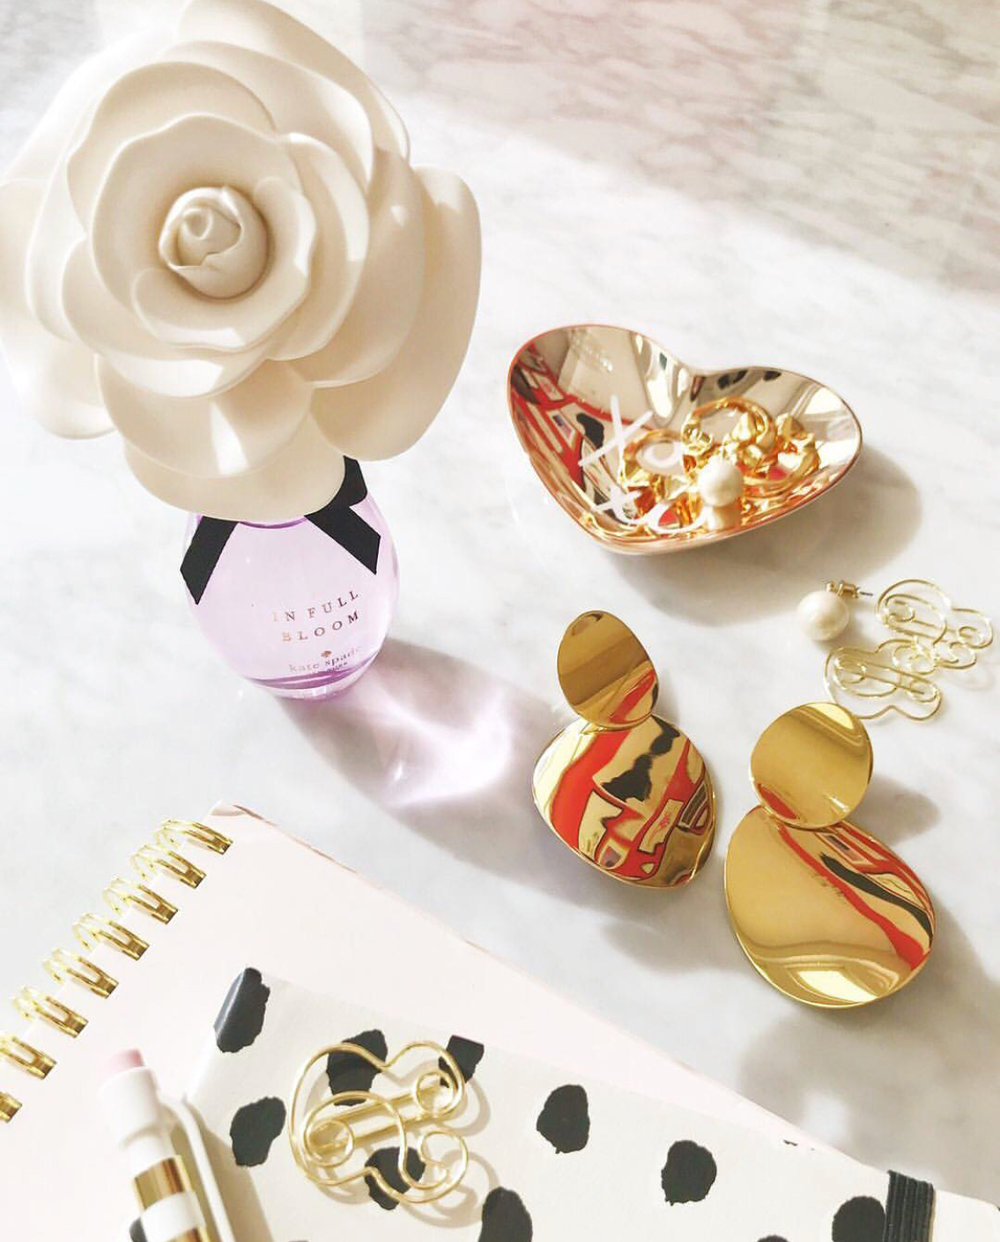 photograph and styling by Catherine Dash for Kate Spade New York